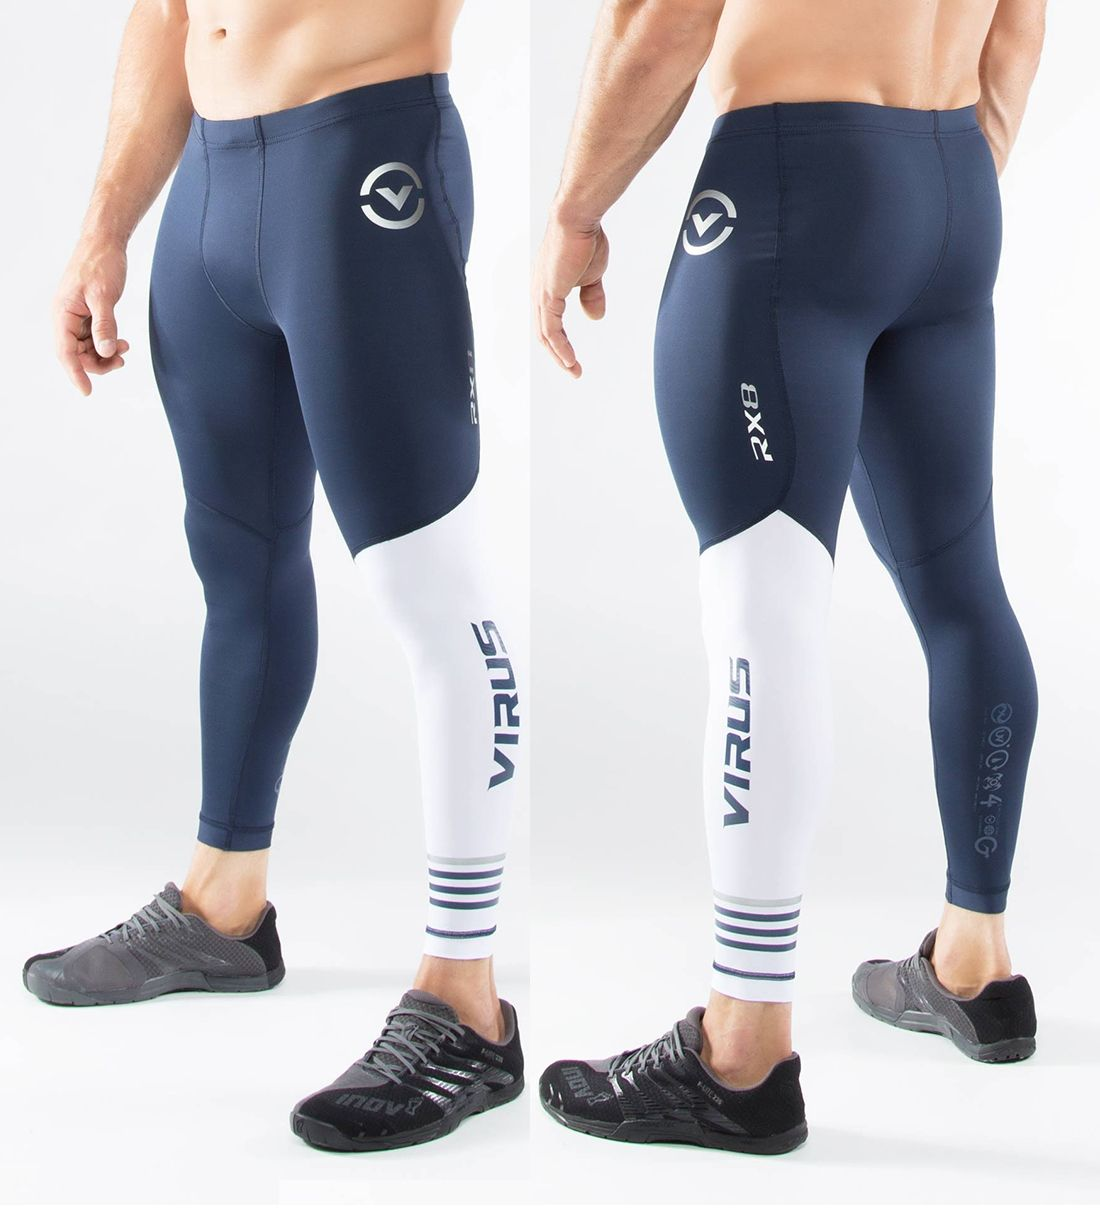 Do you work-out? Choose Comfortable Compression Tights